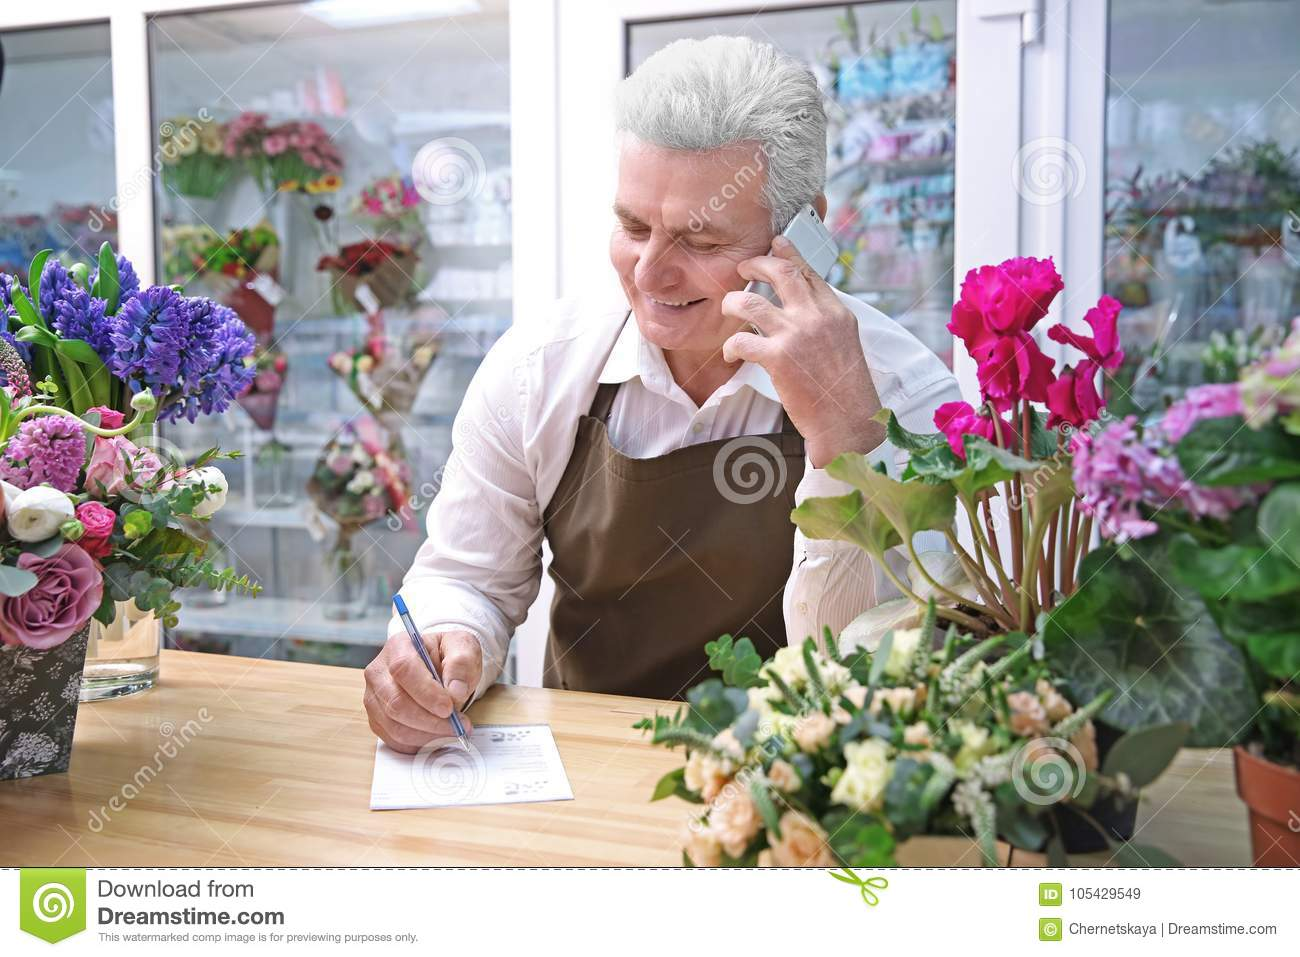 Male Florist Using Mobile Phone While Writing On Paper Stock Image